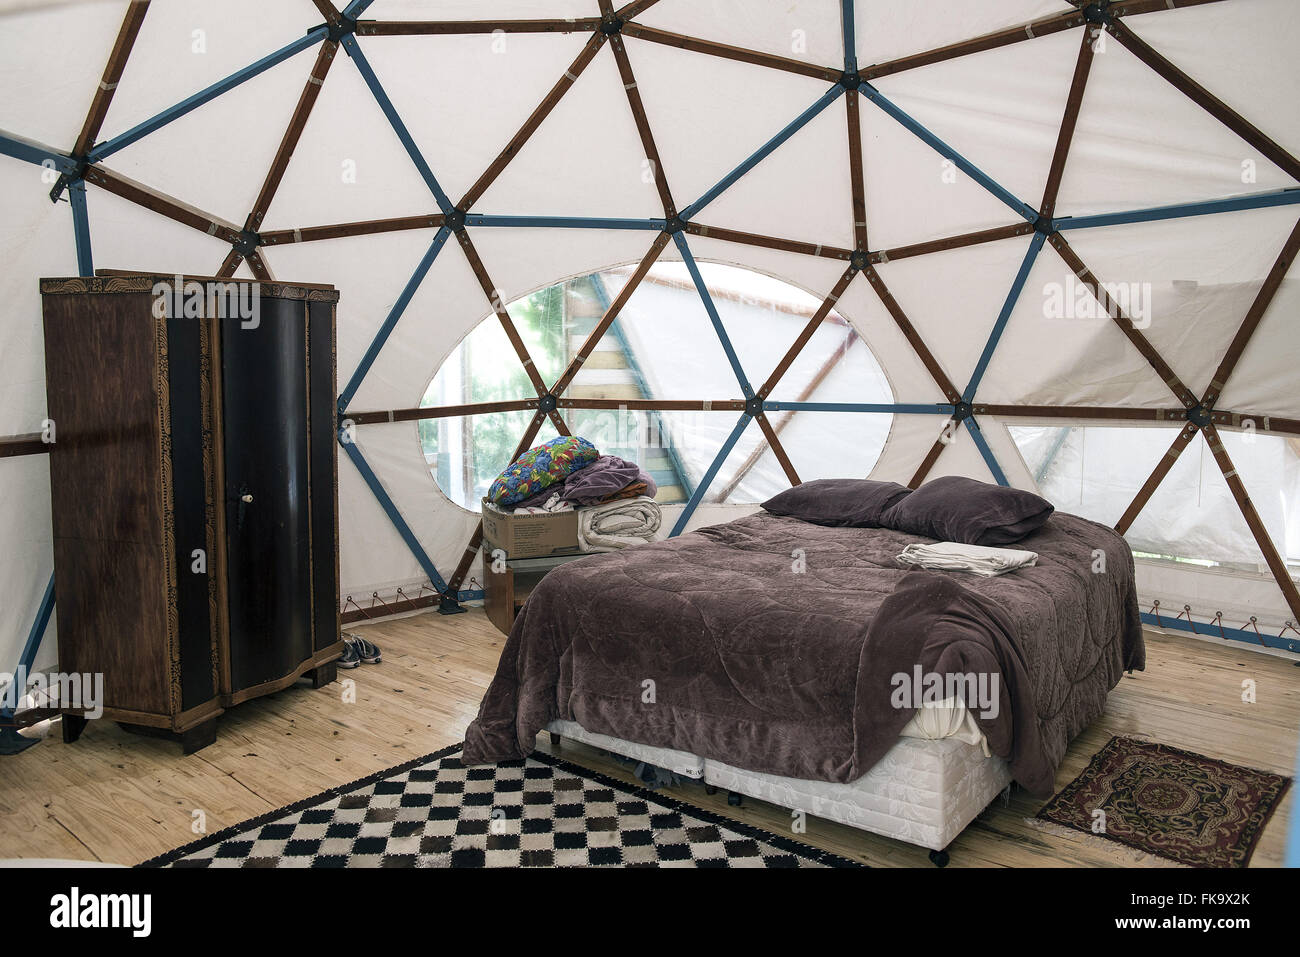 Inside view of sustainable roof tent and canvas - Stock Image